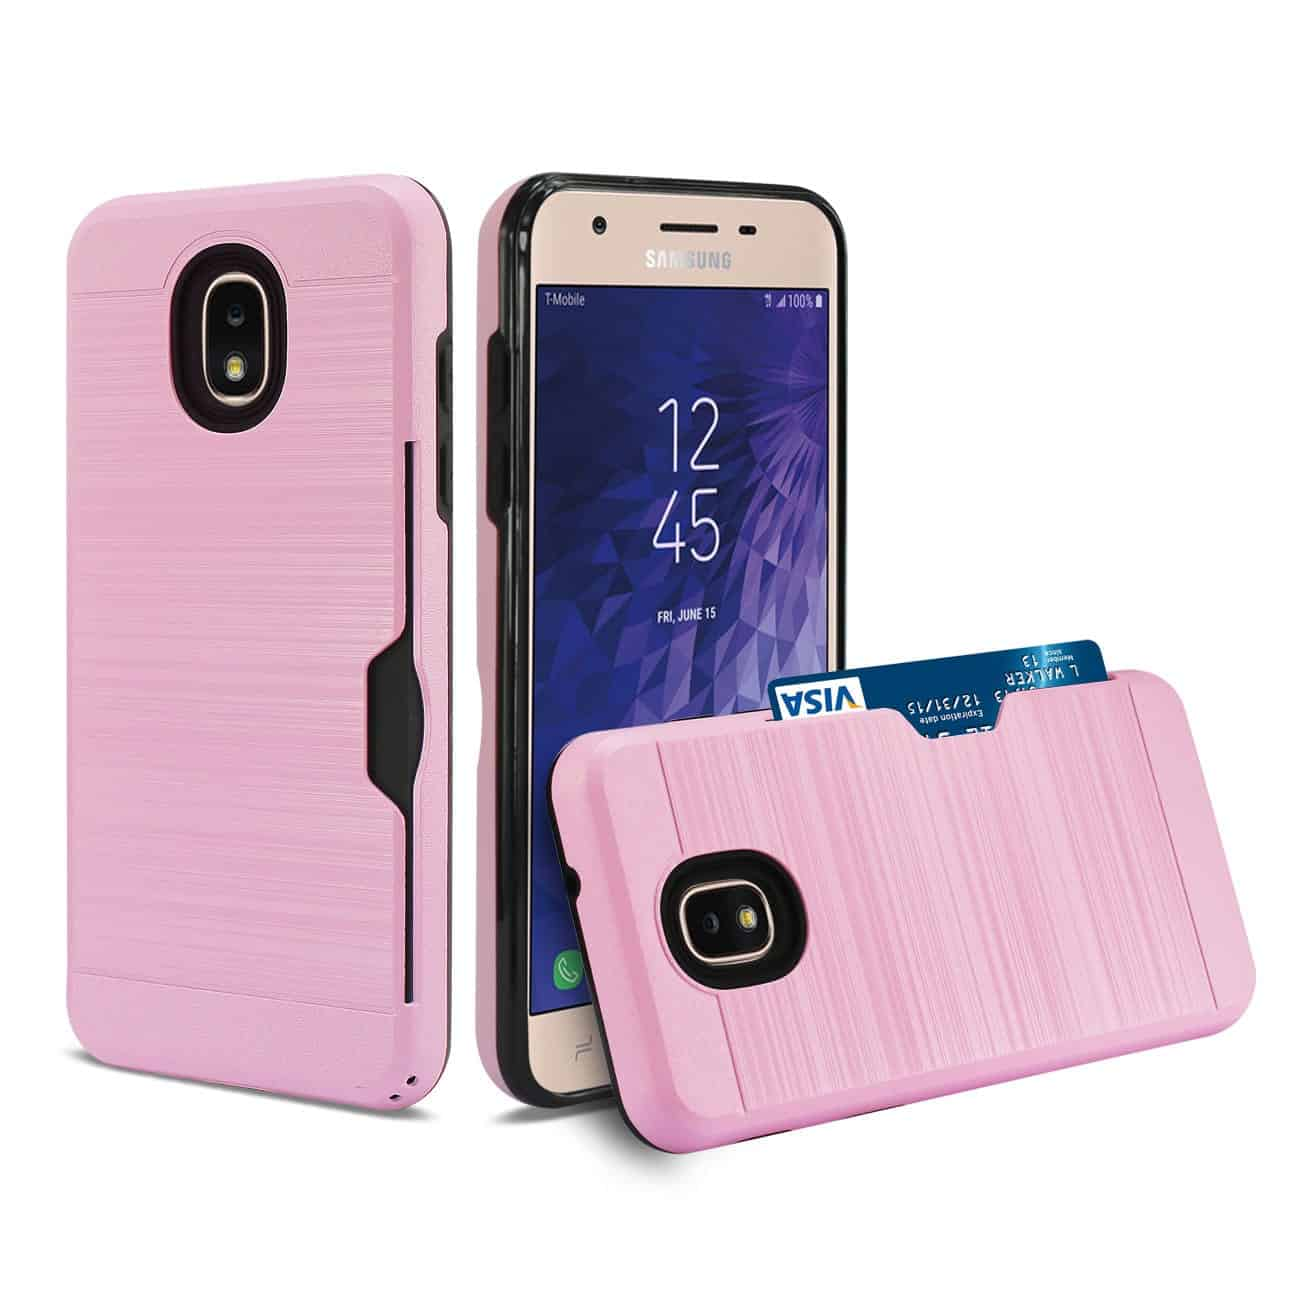 Samsung J3(2018) Slim Armor Hybrid Case With Card Holder In Pink